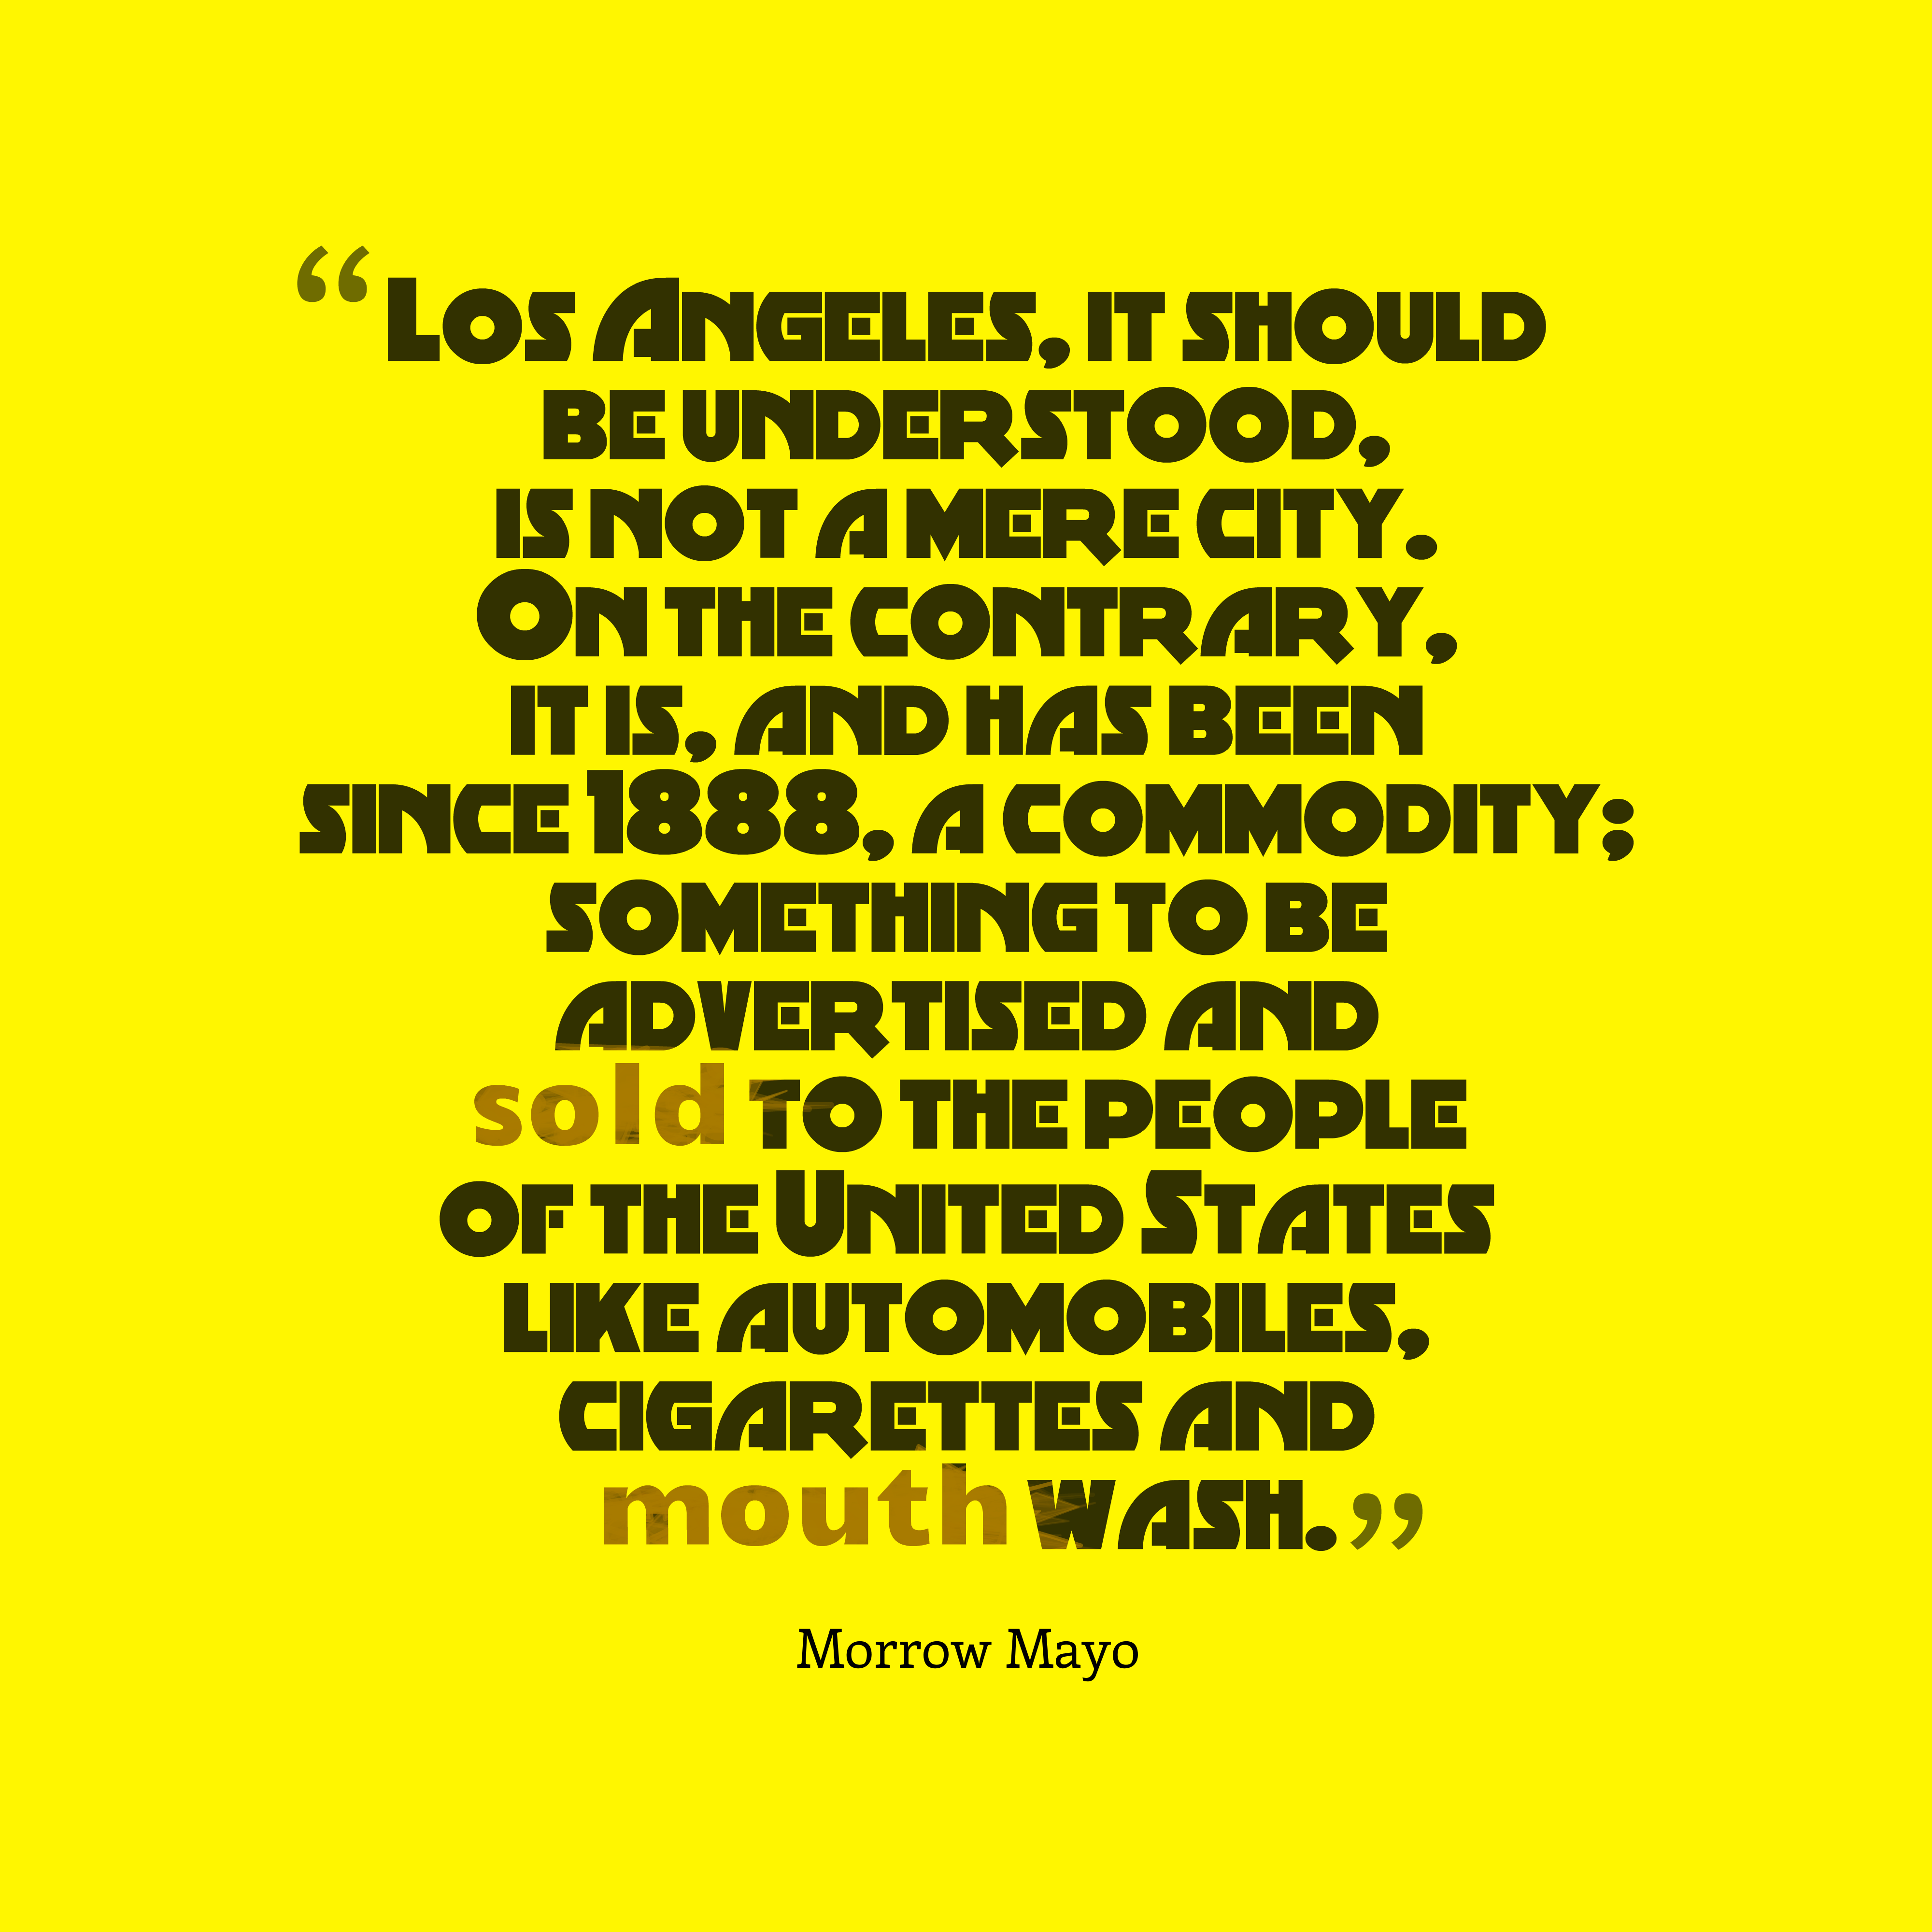 Quotes image of Los Angeles, it should be understood, is not a mere city. On the contrary, it is, and has been since 1888, a commodity; something to be advertised and sold to the people of the United States like automobiles, cigarettes and mouth wash.